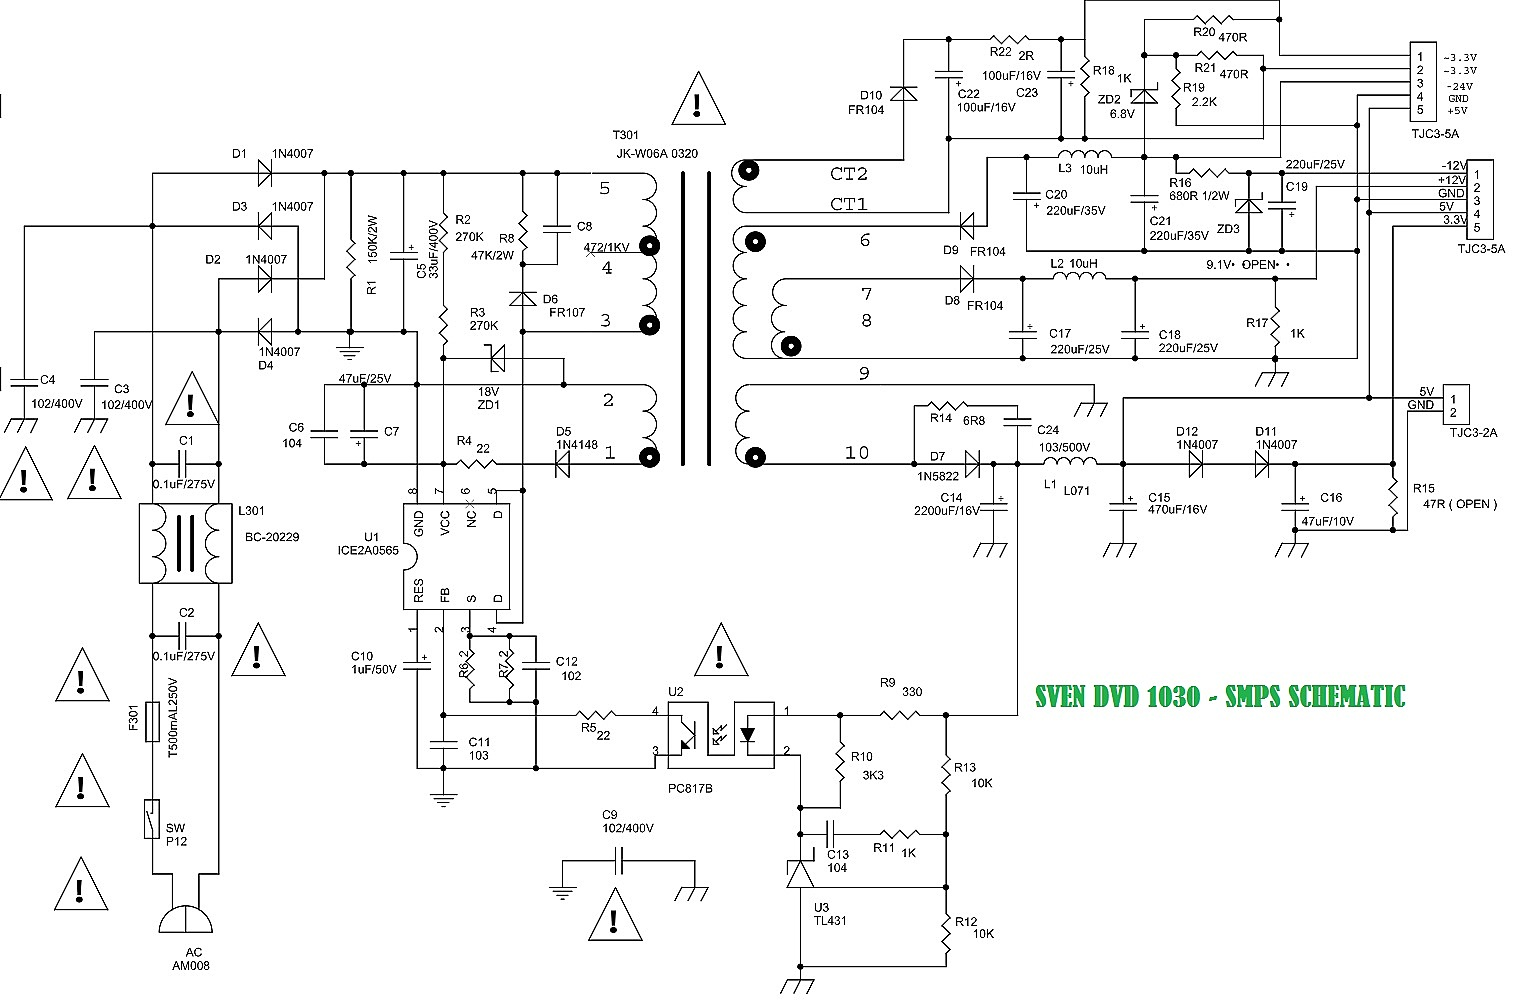 smps schematic diagram fluorescent light holder sven hd1030 and hd1060 dvd player  front